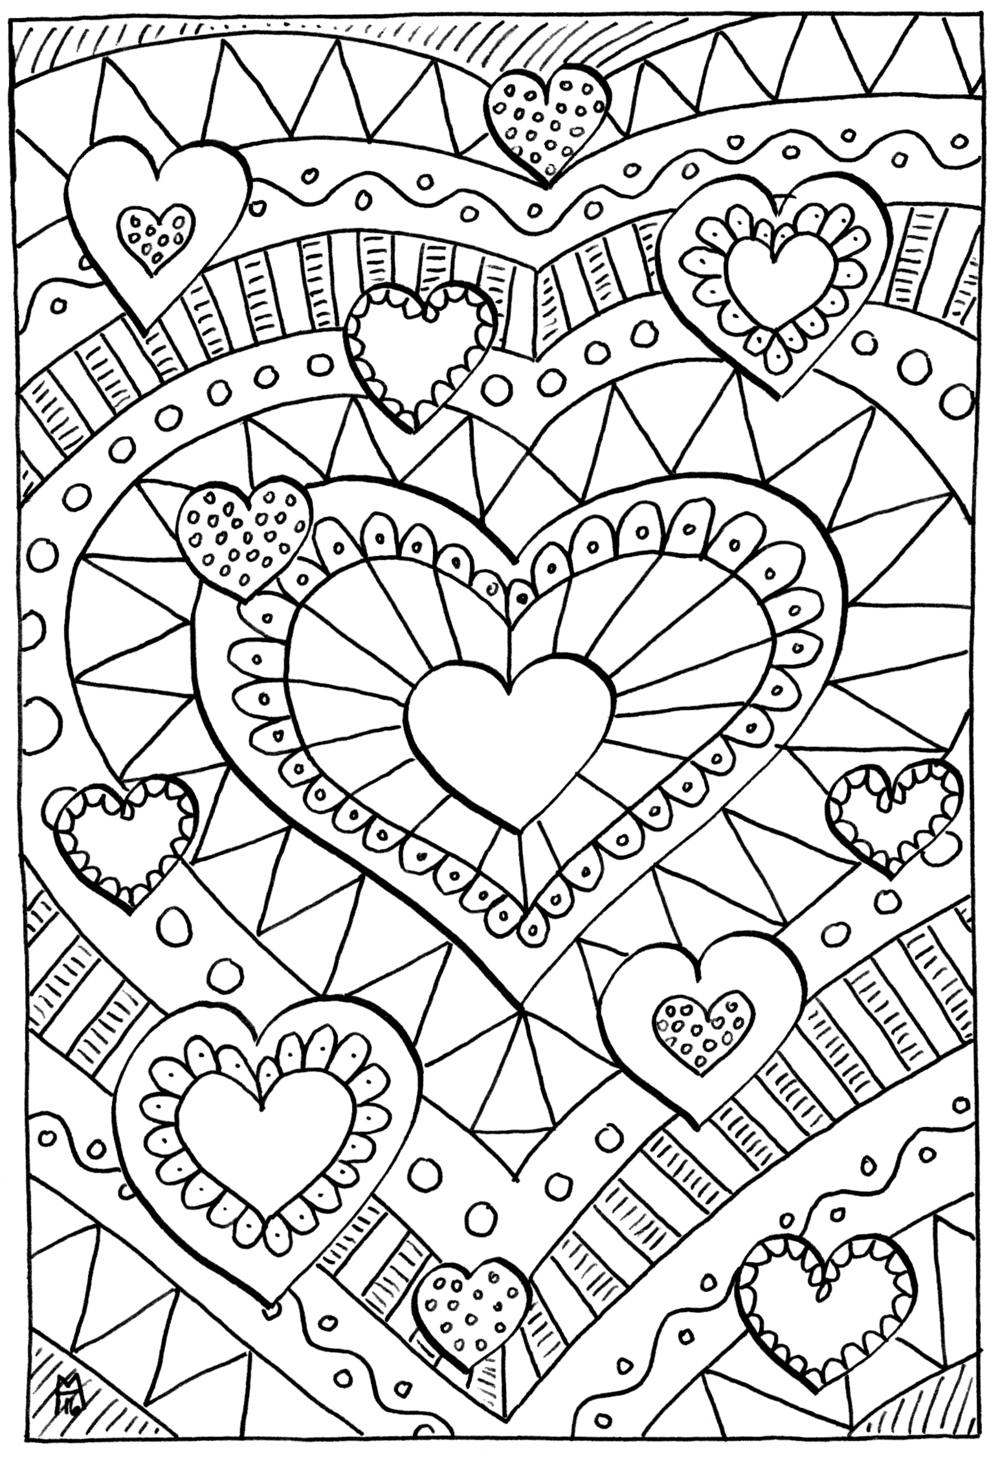 Healing Hearts Coloring Page | Ausmalbilder, Windowcolor und ...